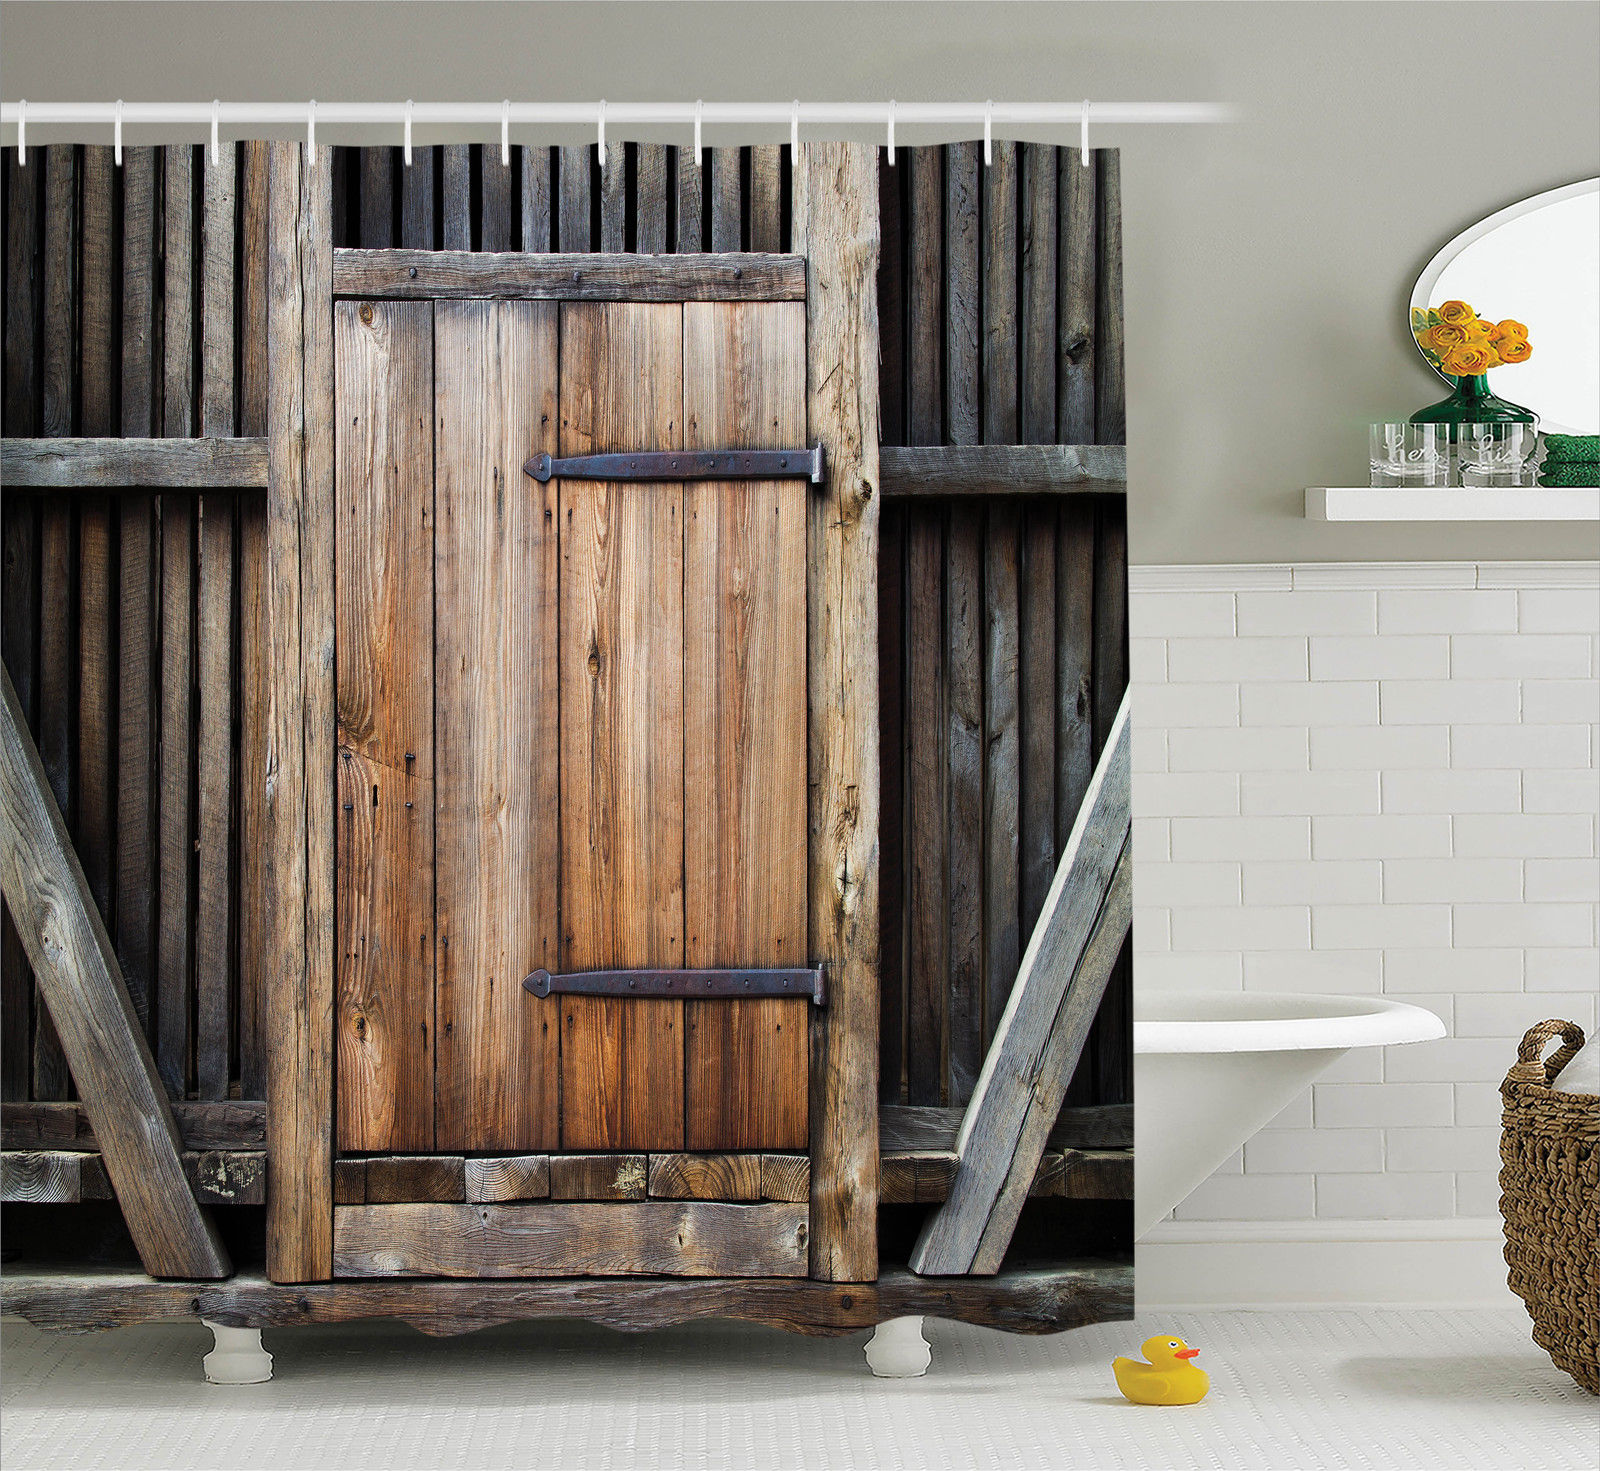 antique decor shower curtain set rustic antique wooden door exterior facades rural barn timber weathered